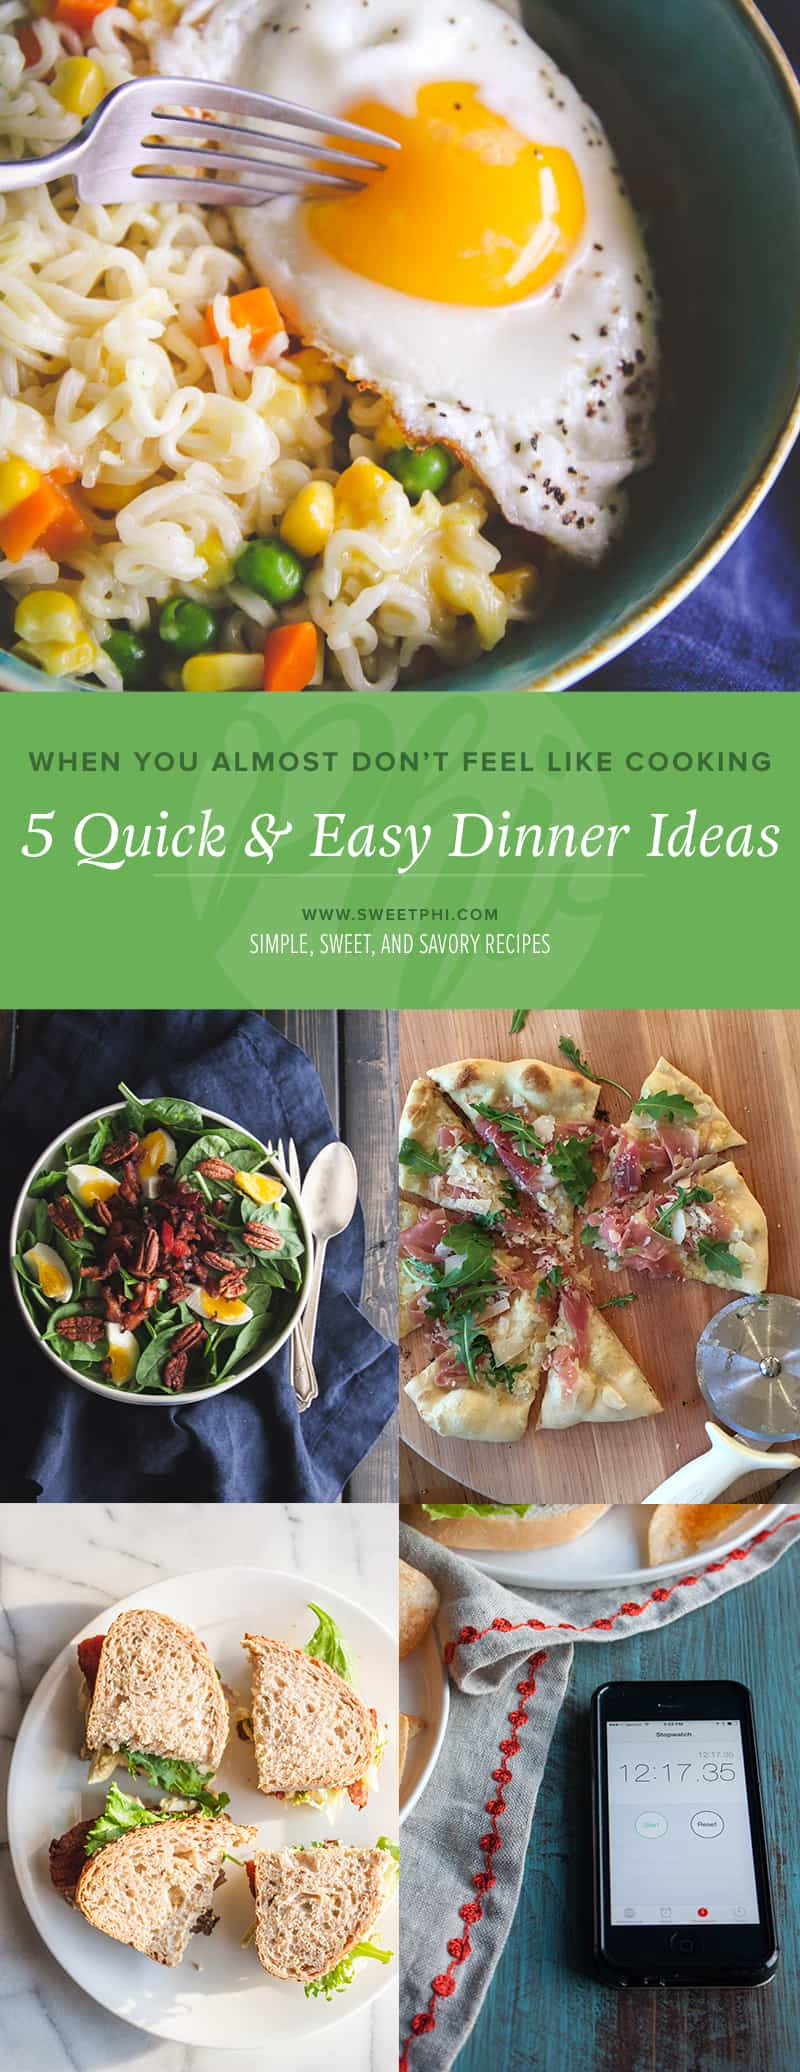 The 5 best quick and easy dinner ideas